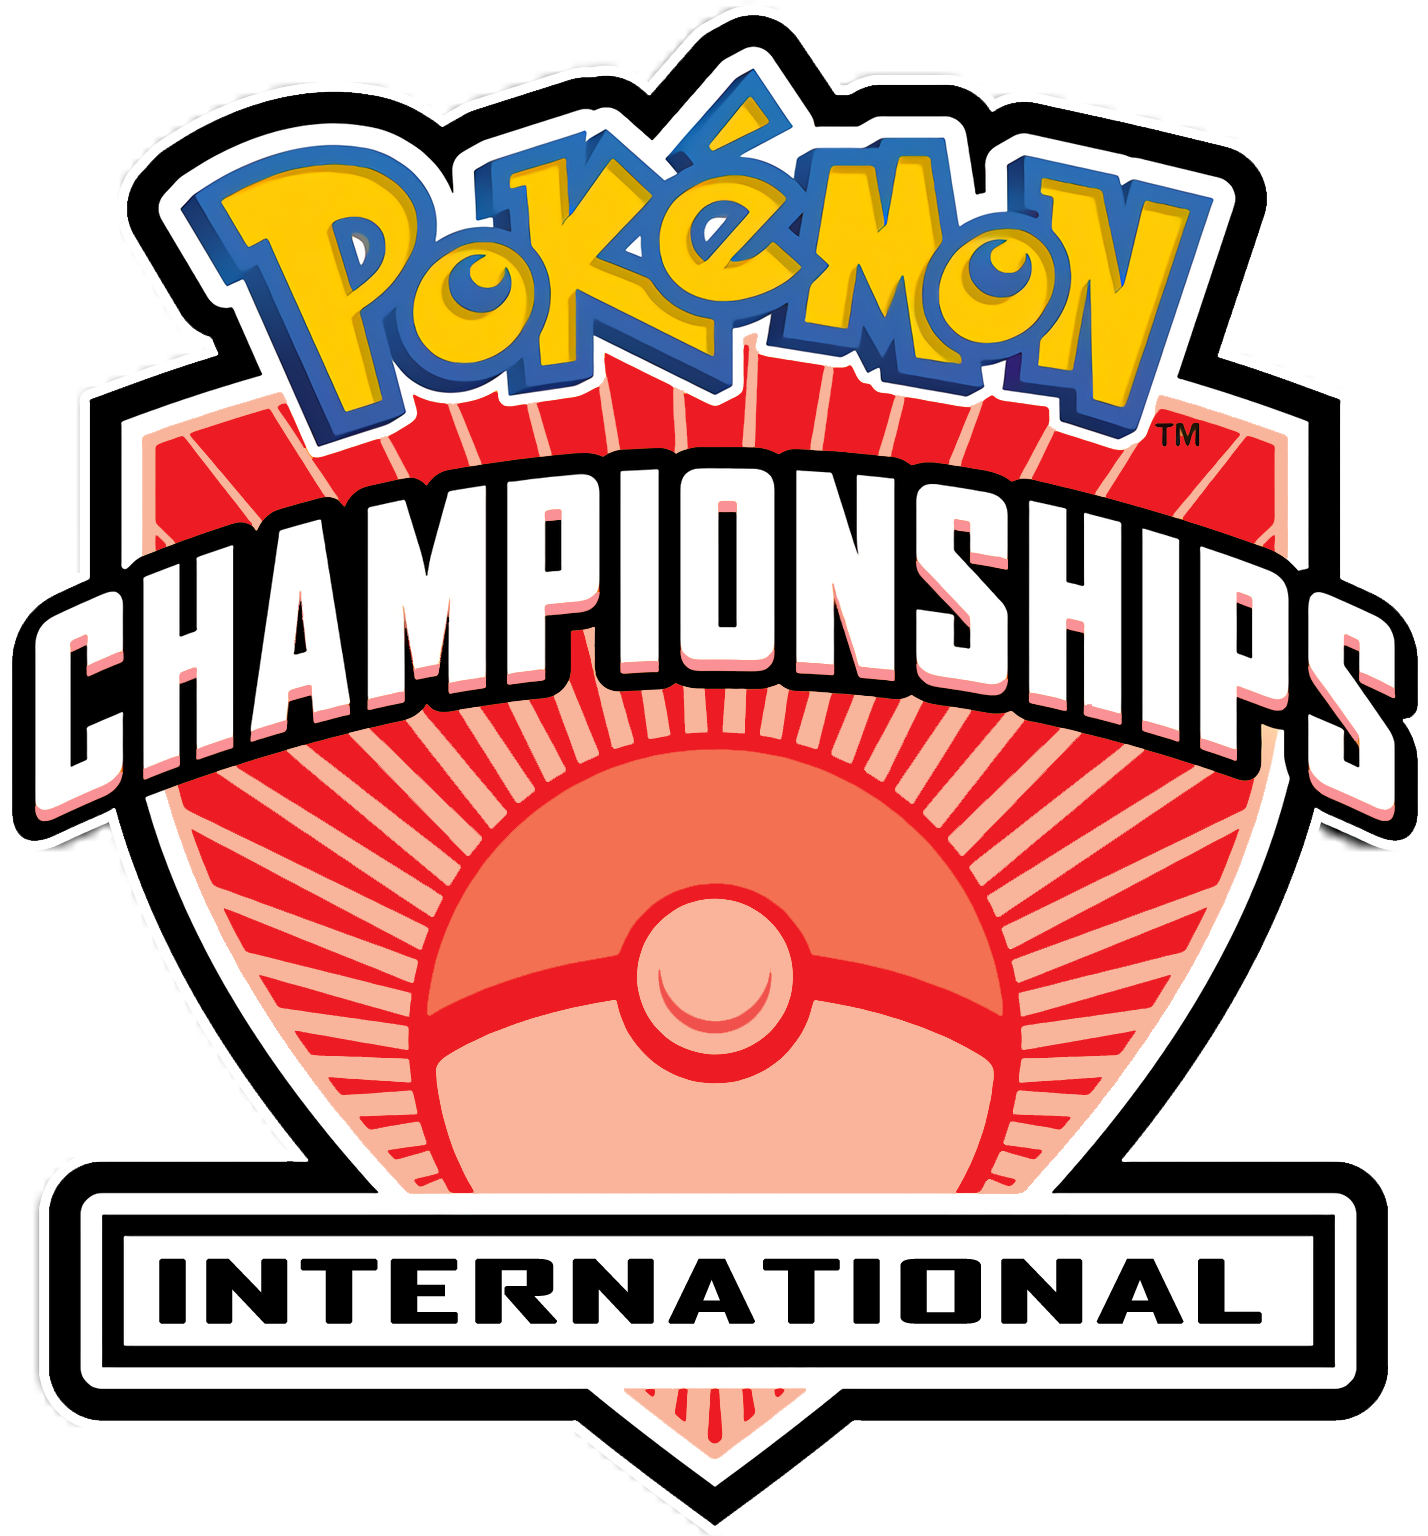 2019 North America Internationals